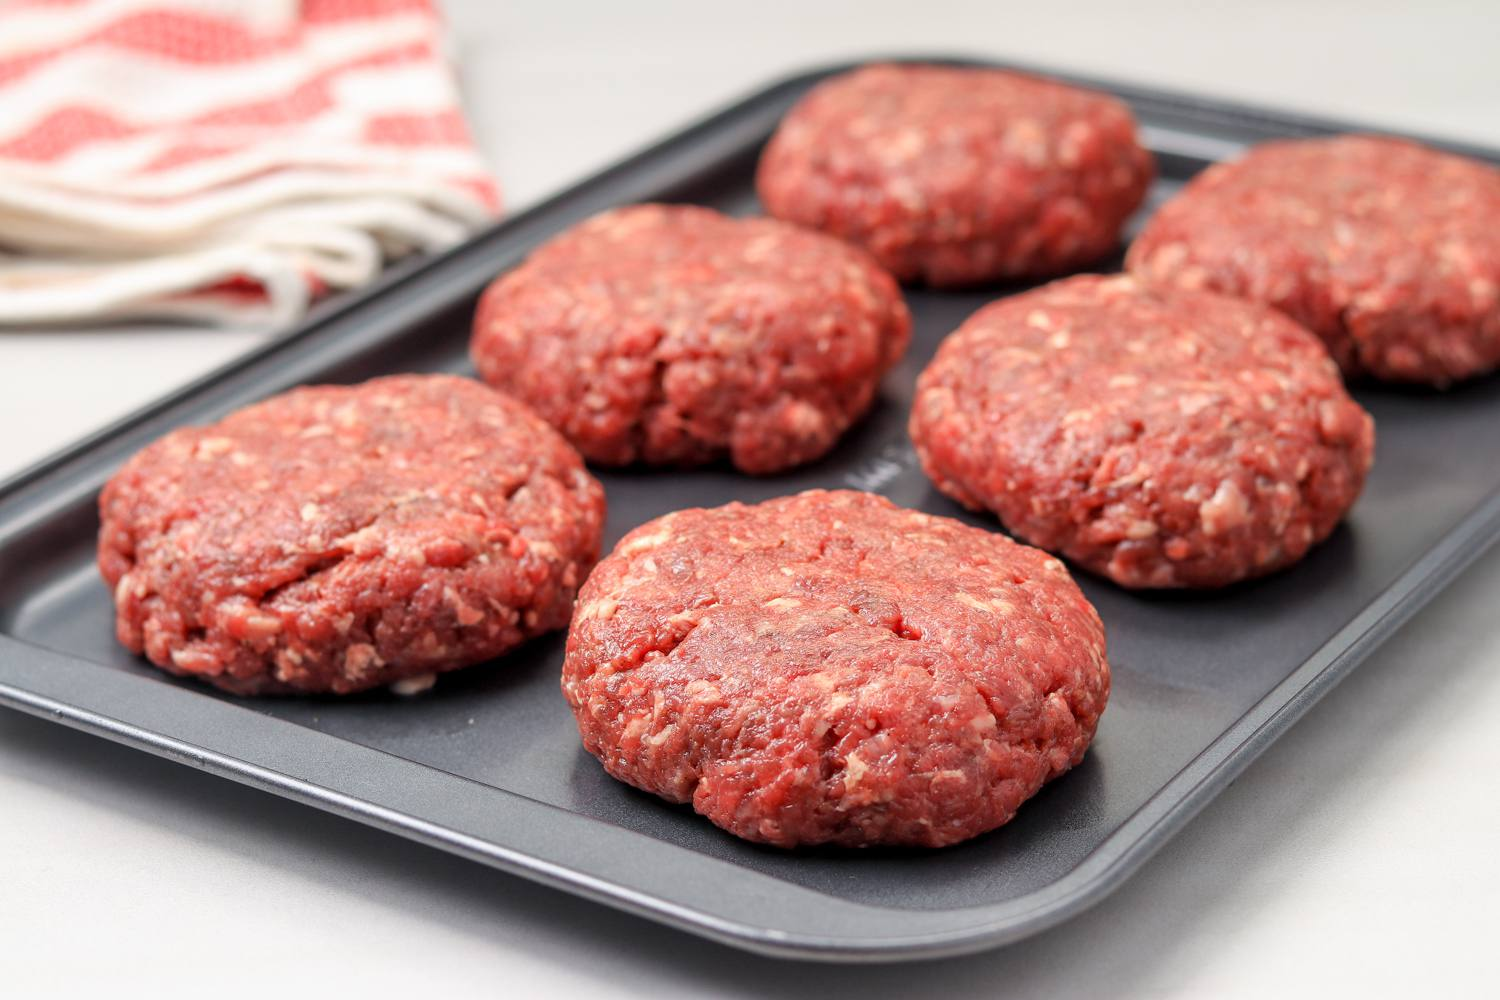 How To Cook Hamburgers In The Oven